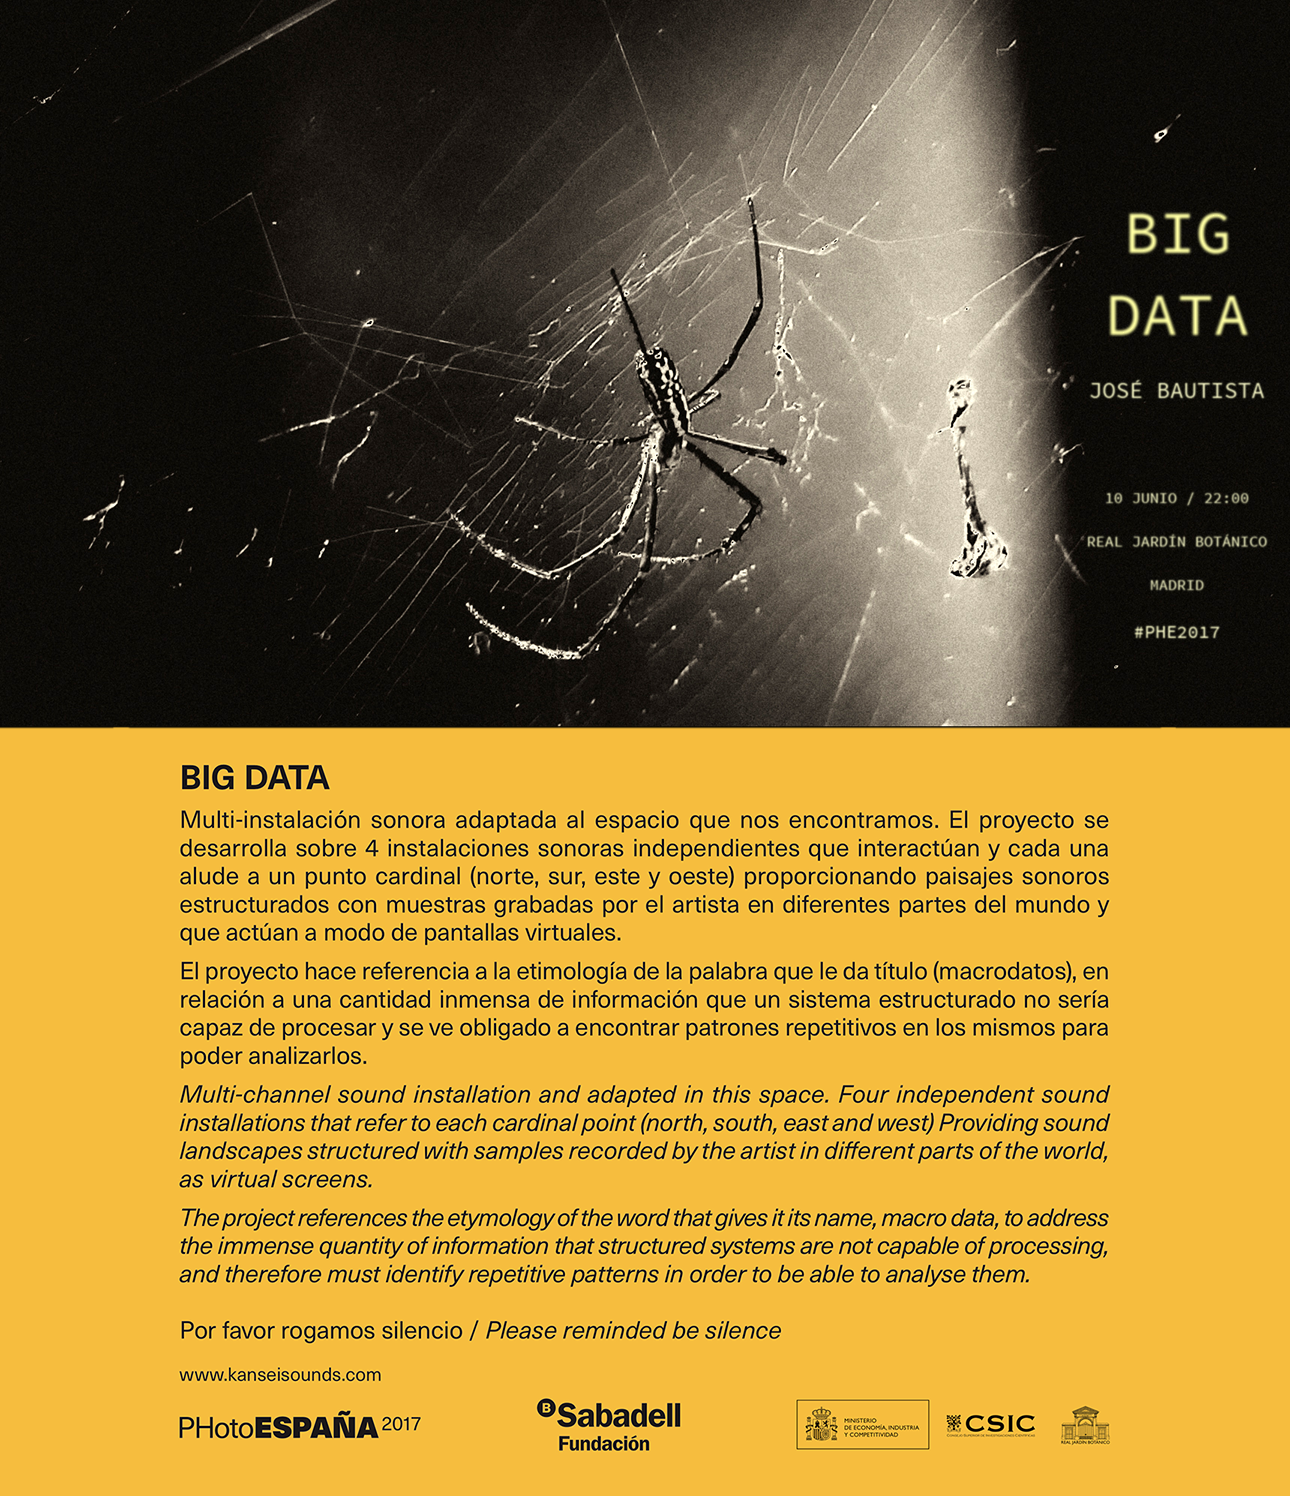 BIG DATA sound installation at PhotoEspaña 2017 festival. 10th June, Real Jardin Botanico – Madrid, Spain.